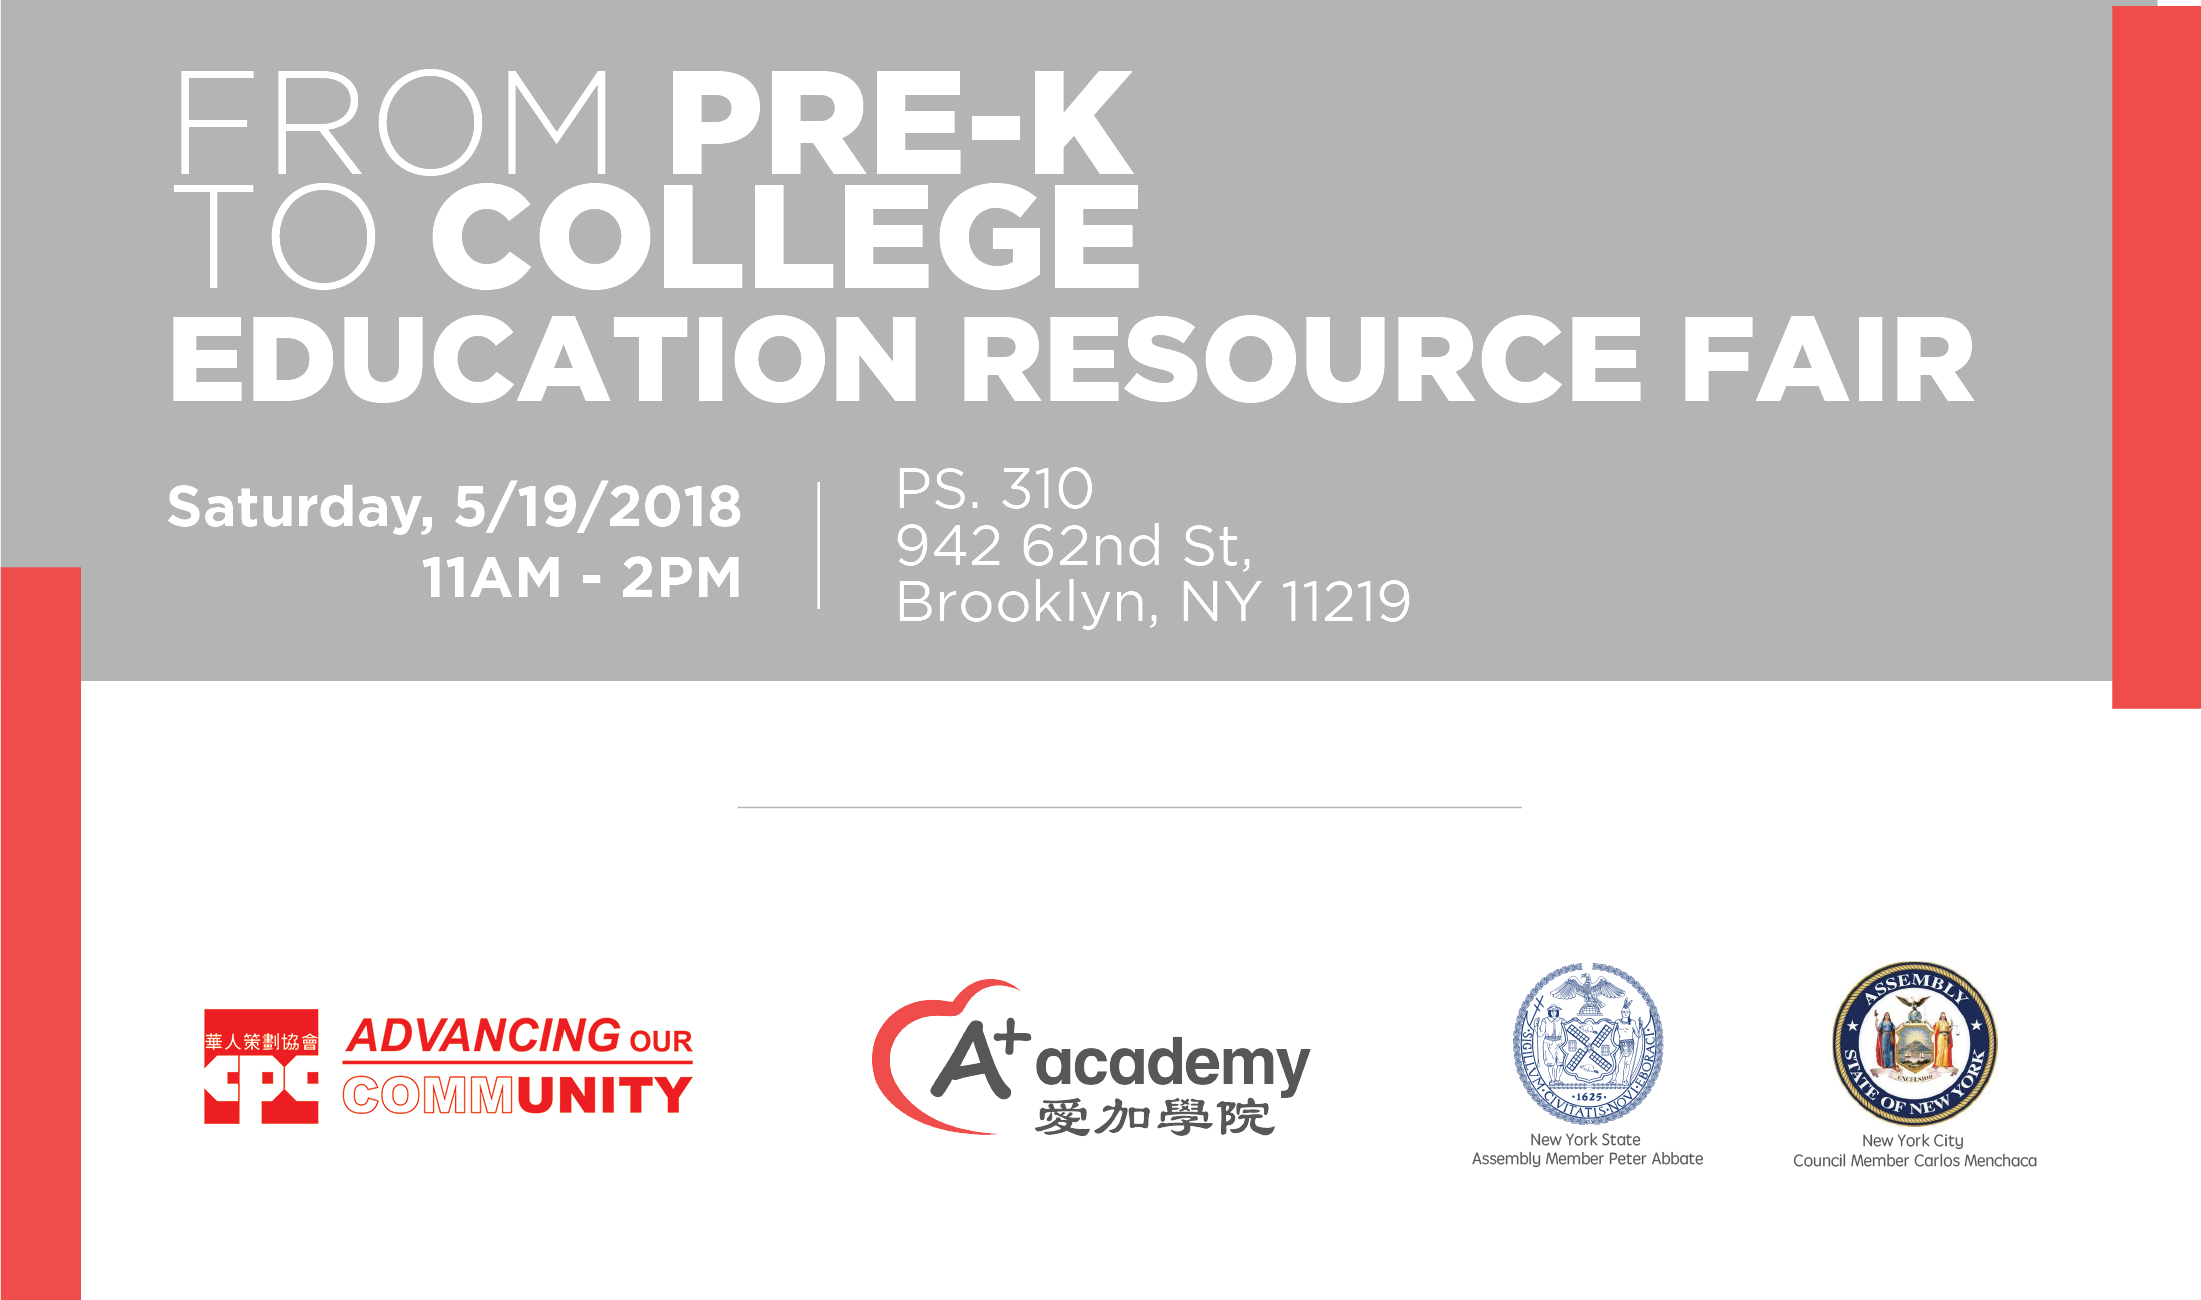 Education Resource Fair - 5/19/2018 11AM-2PM at PS 310